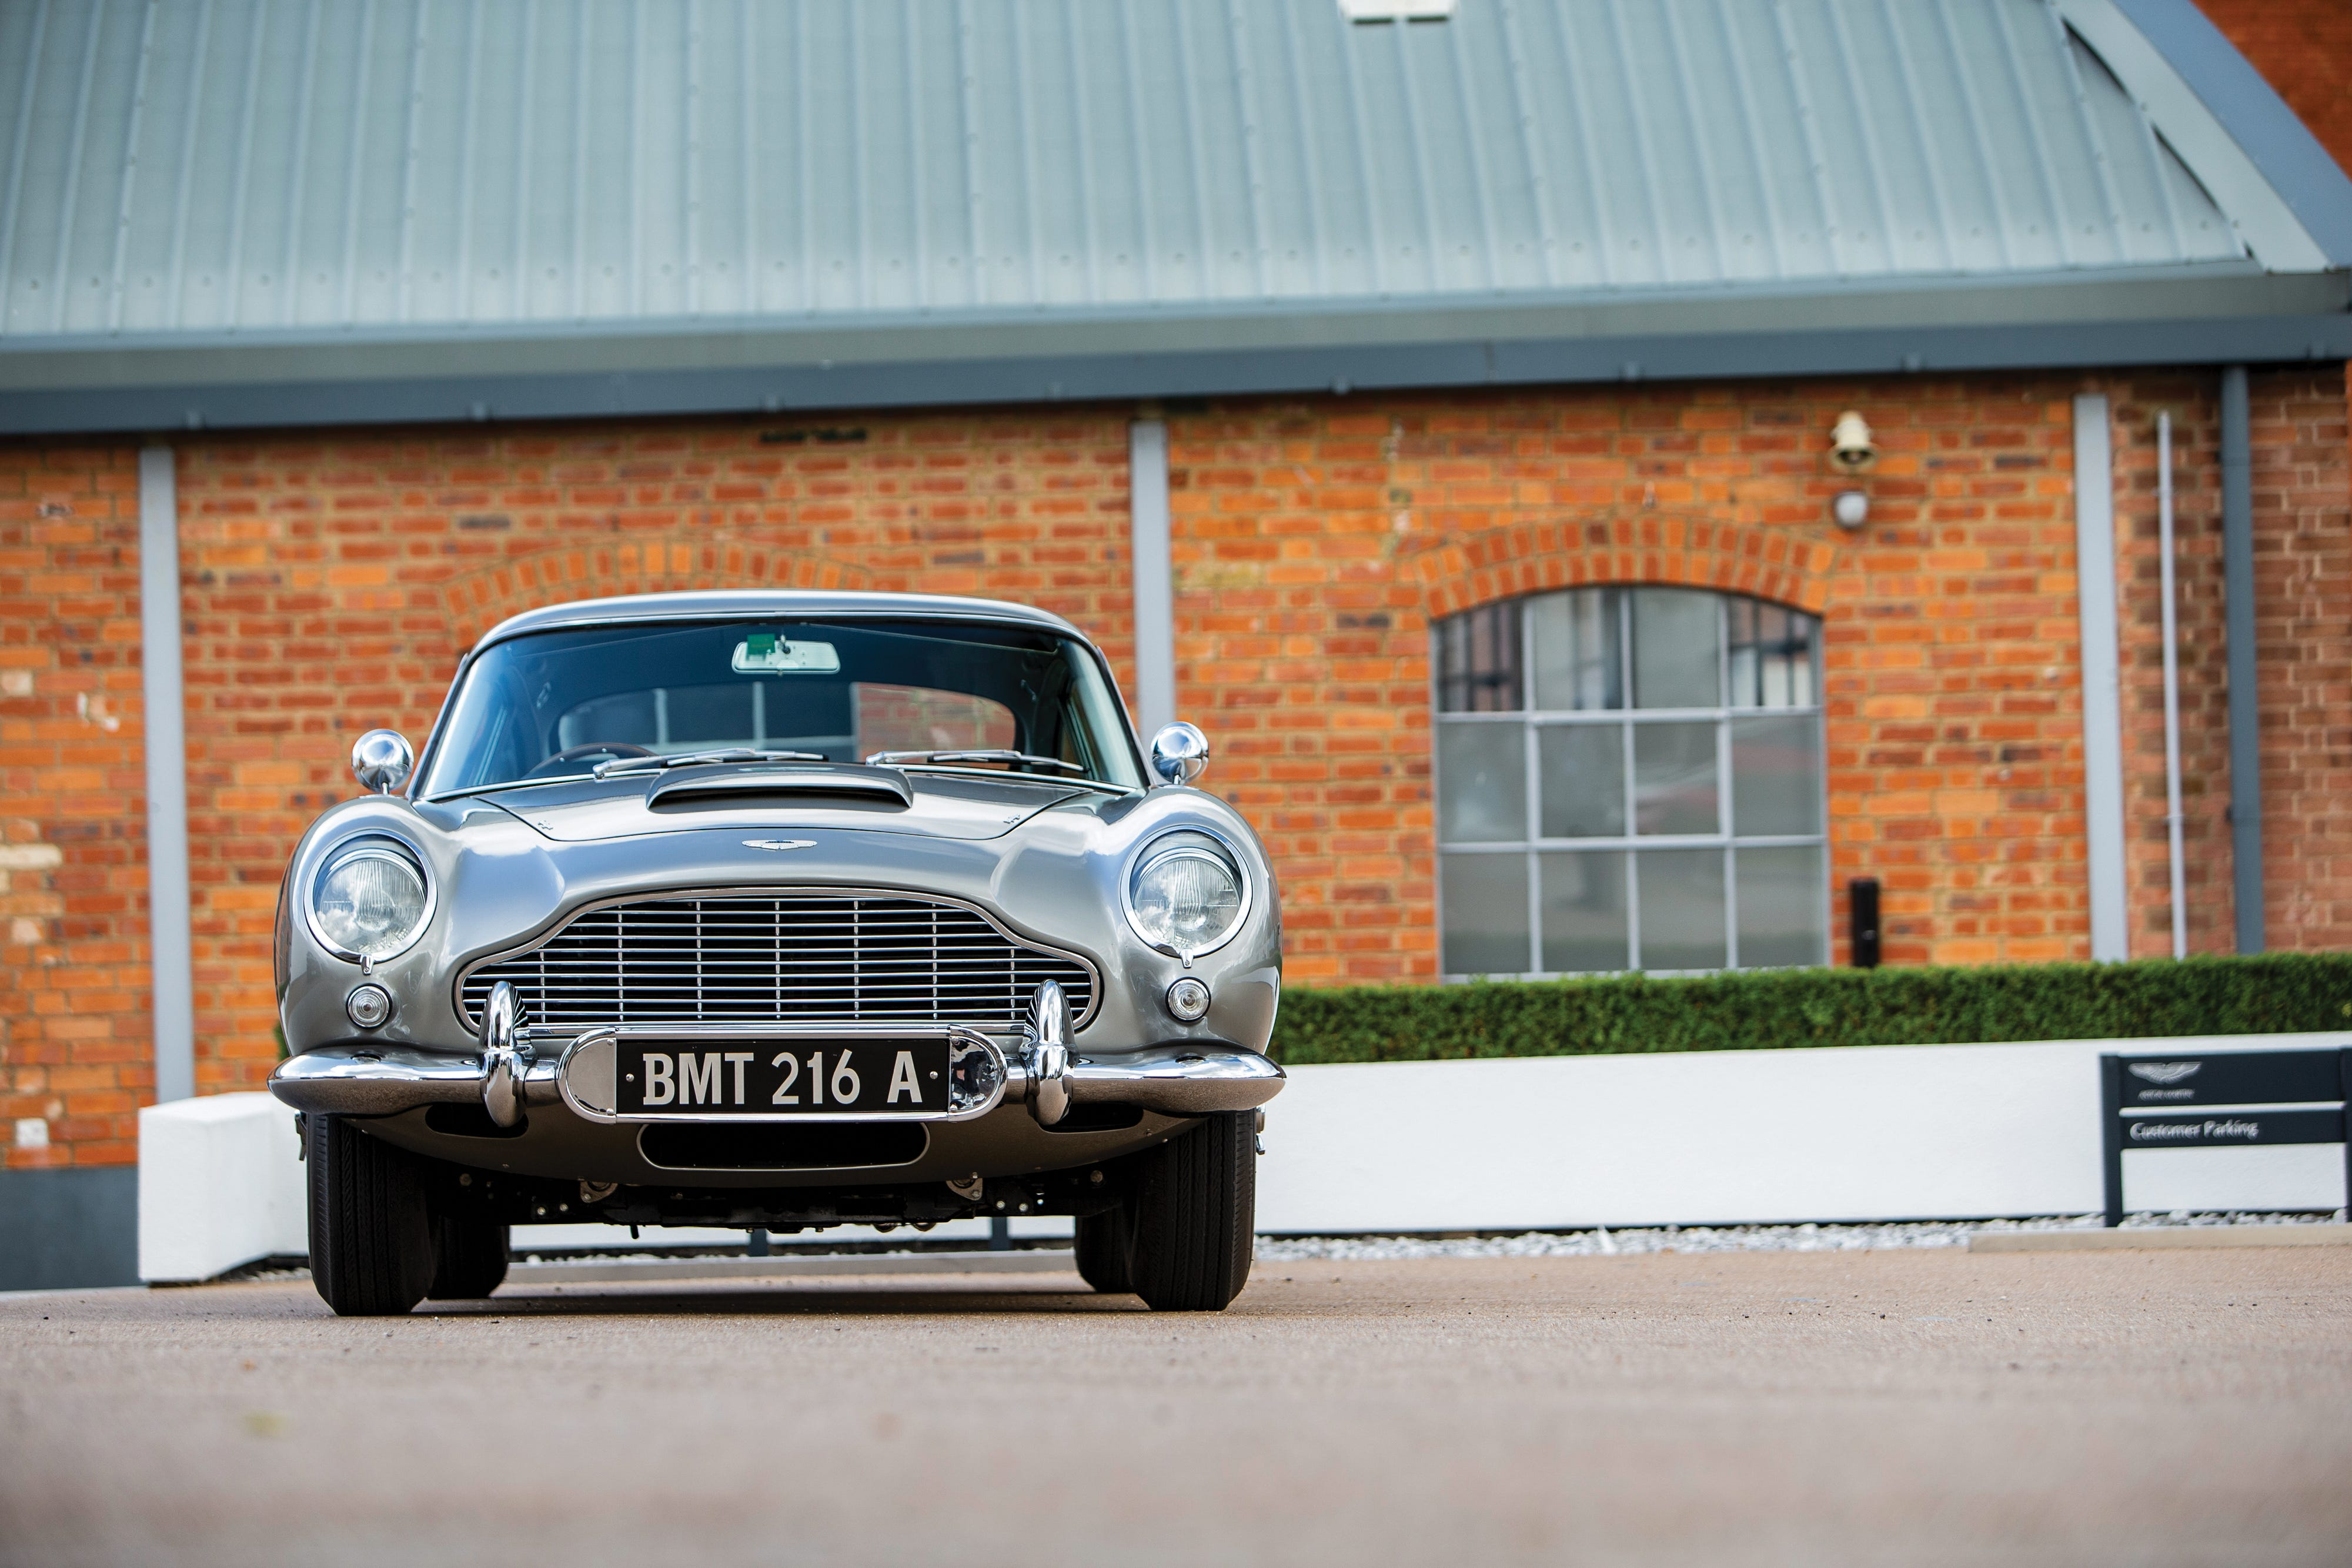 James Bond Aston Martin Db5 Goes Up For Auction